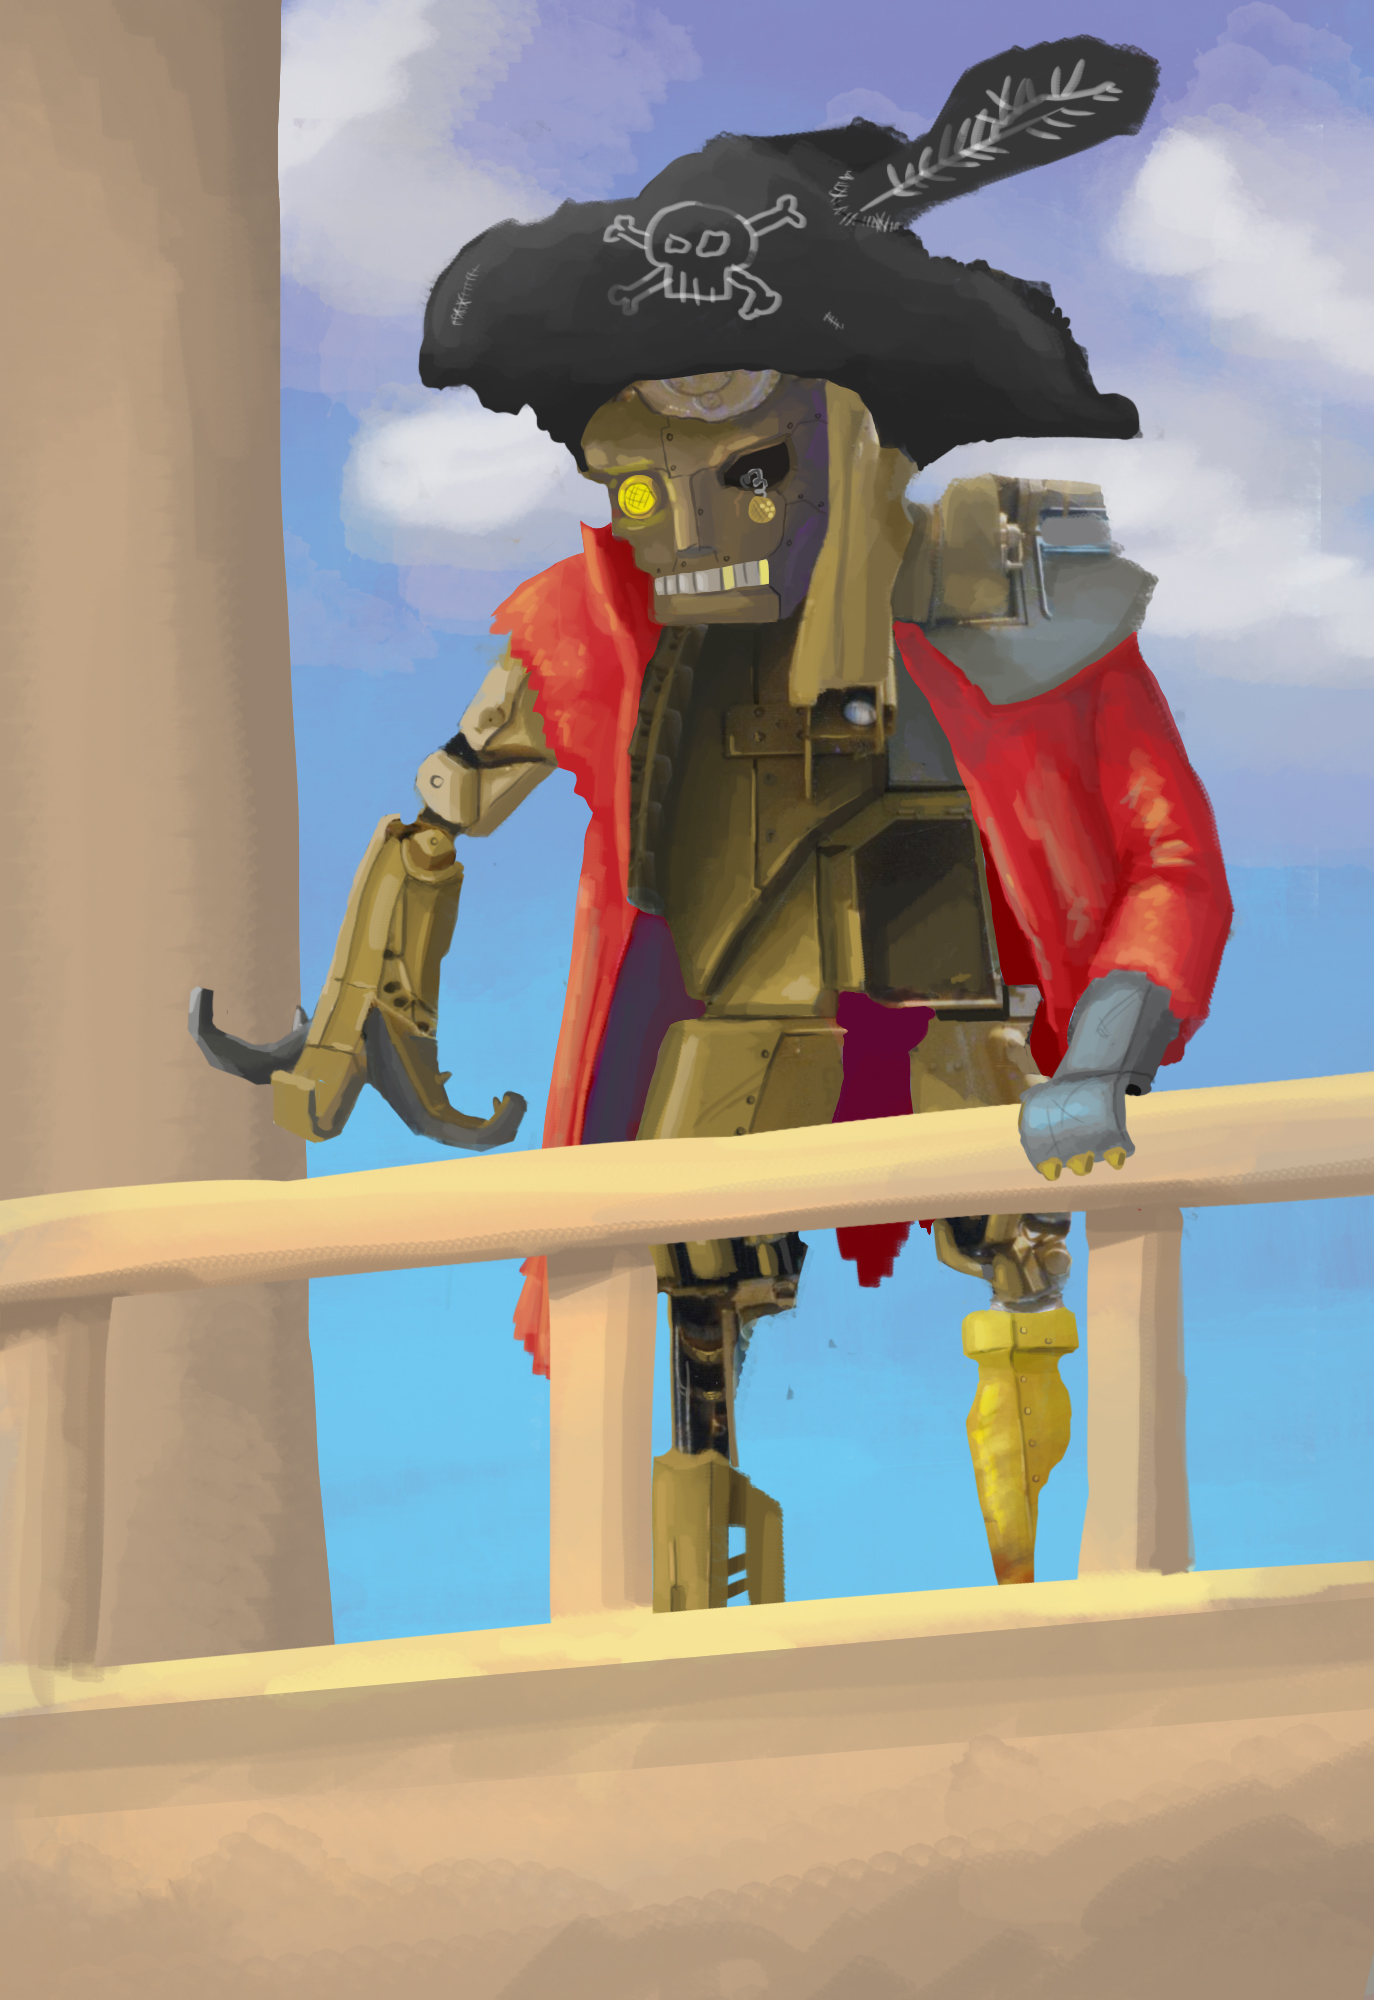 Sad Robot Pirate